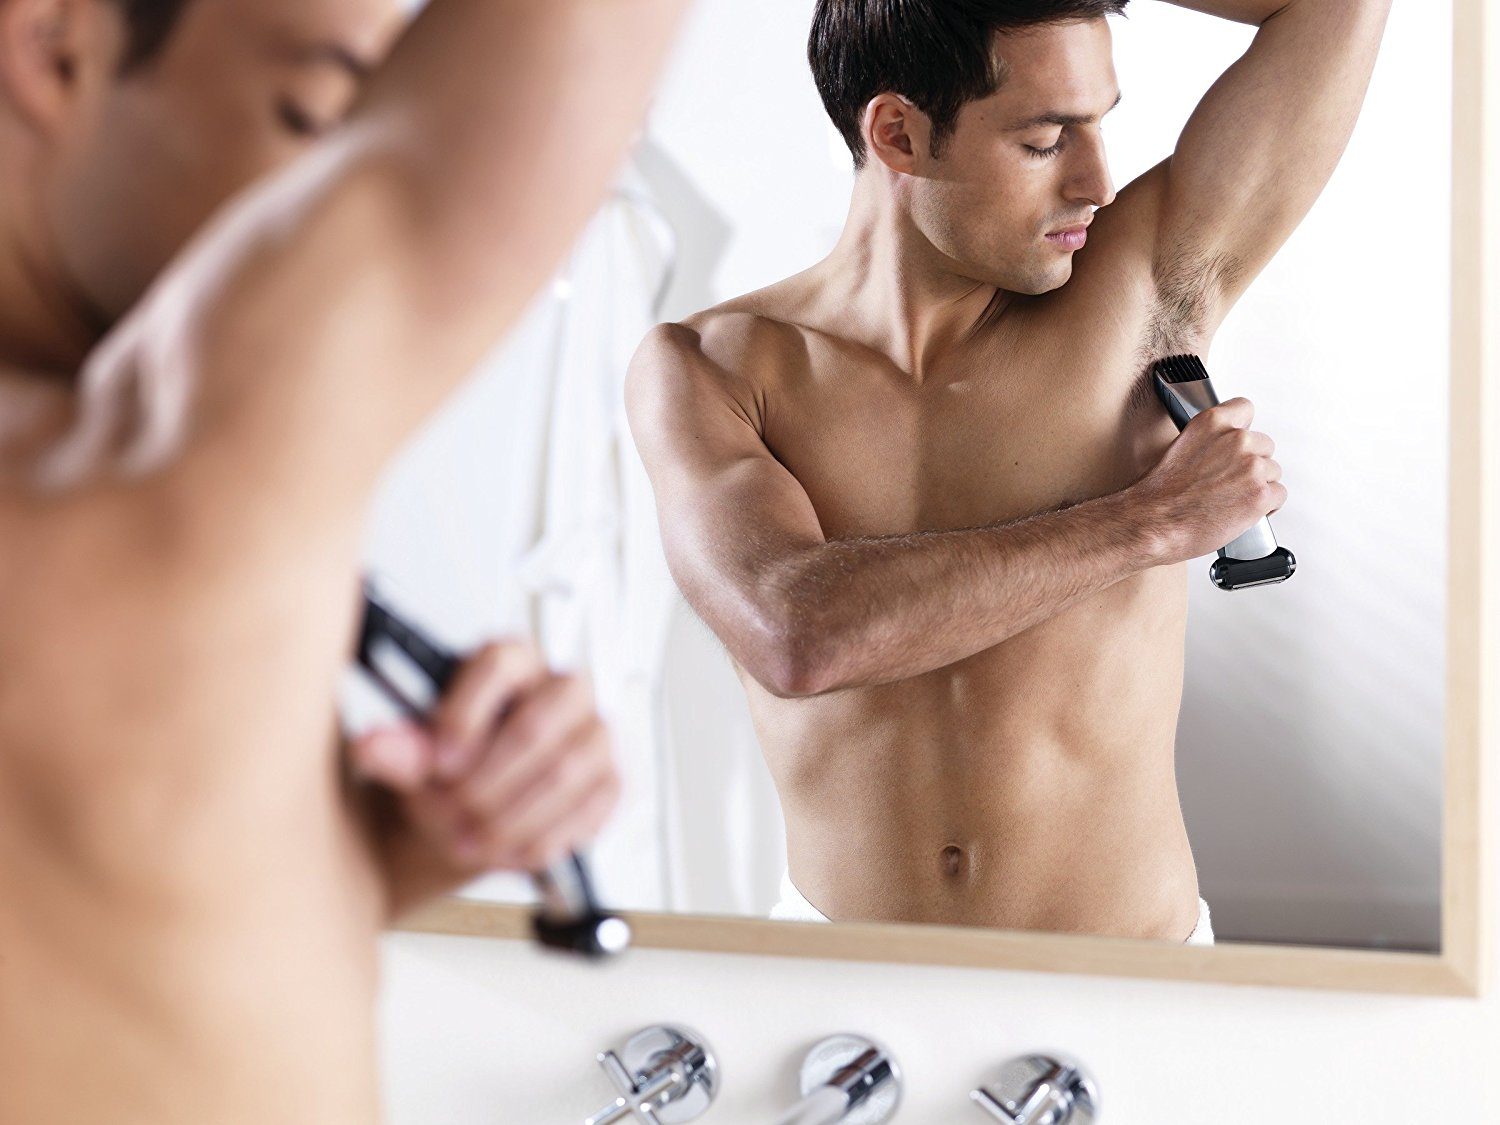 Men shaving his armpits